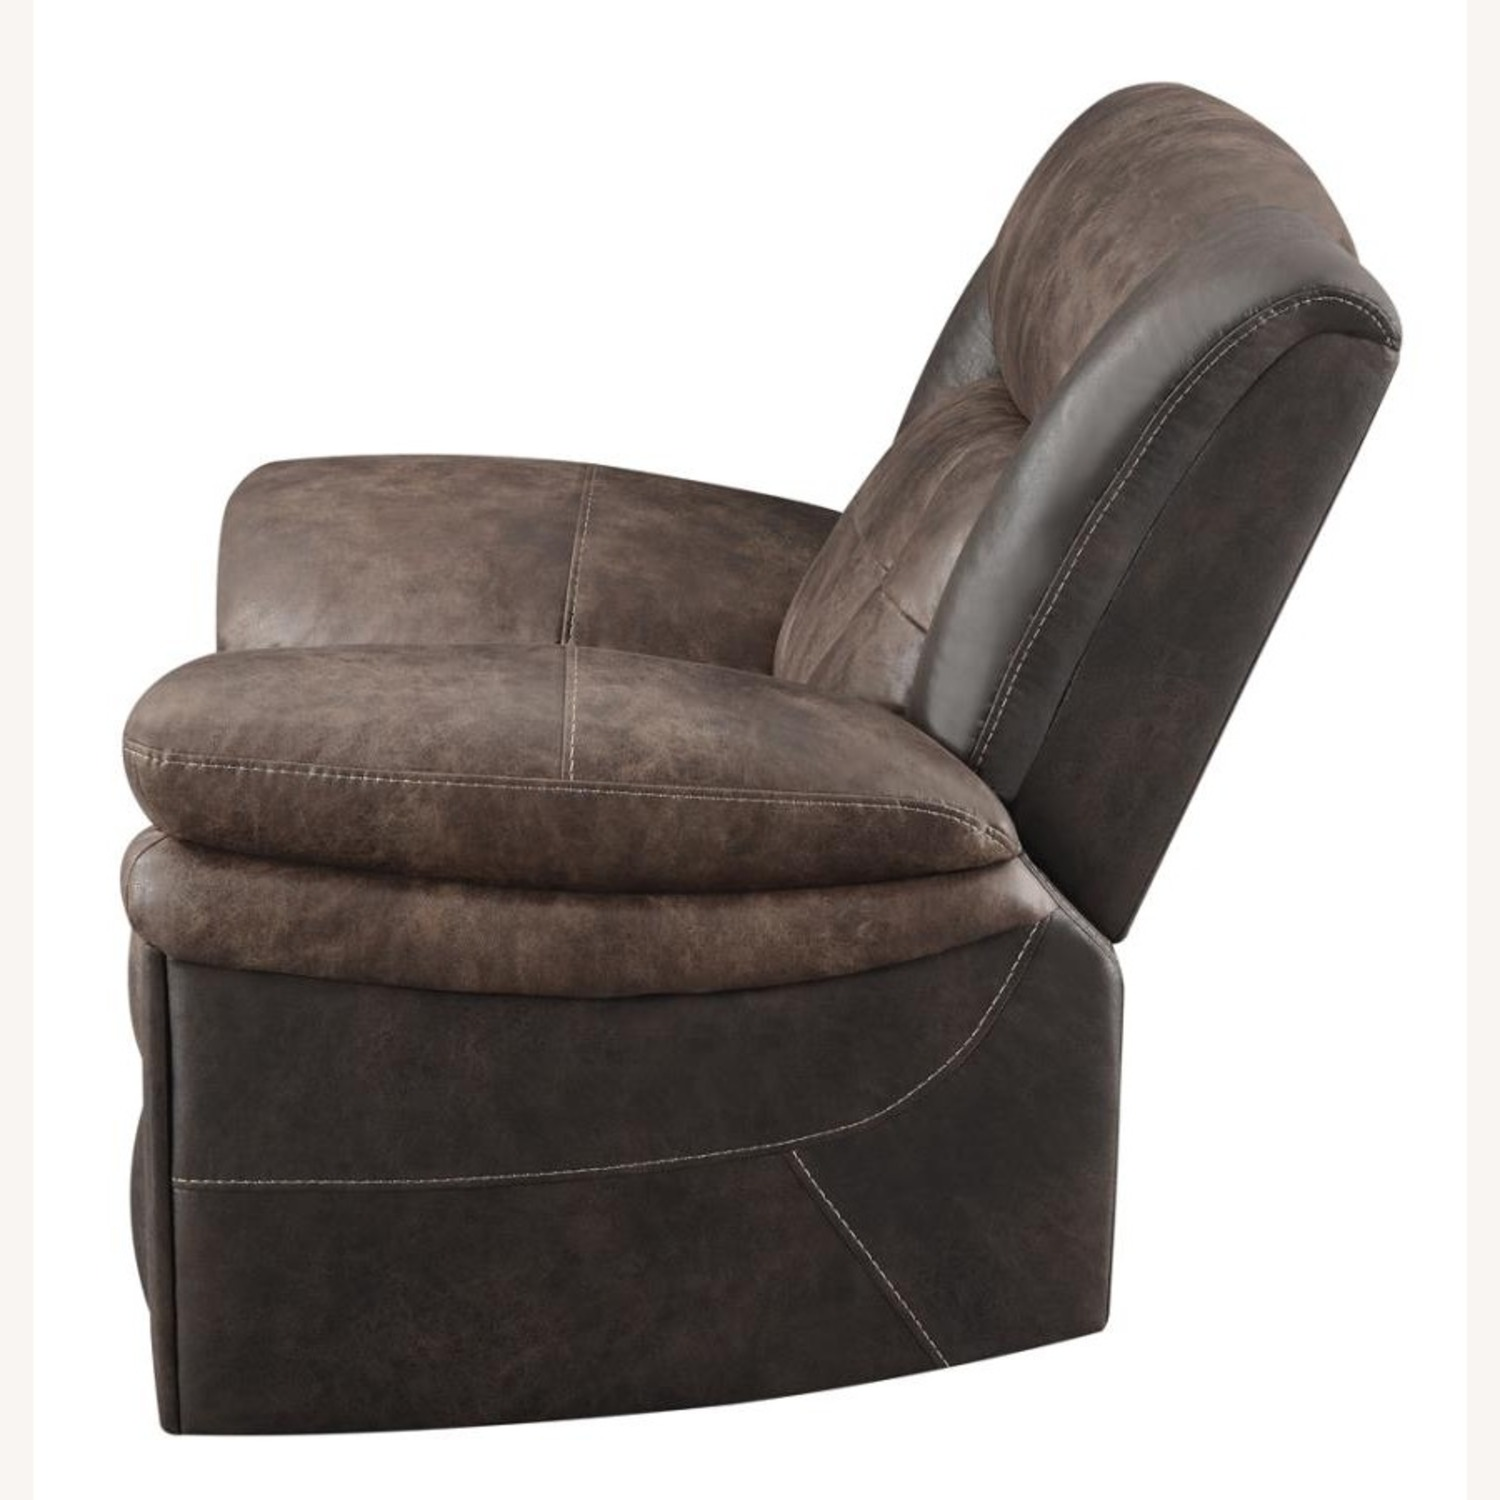 Power Recliner W/ Power Outlet In Chocolate Finish - image-2